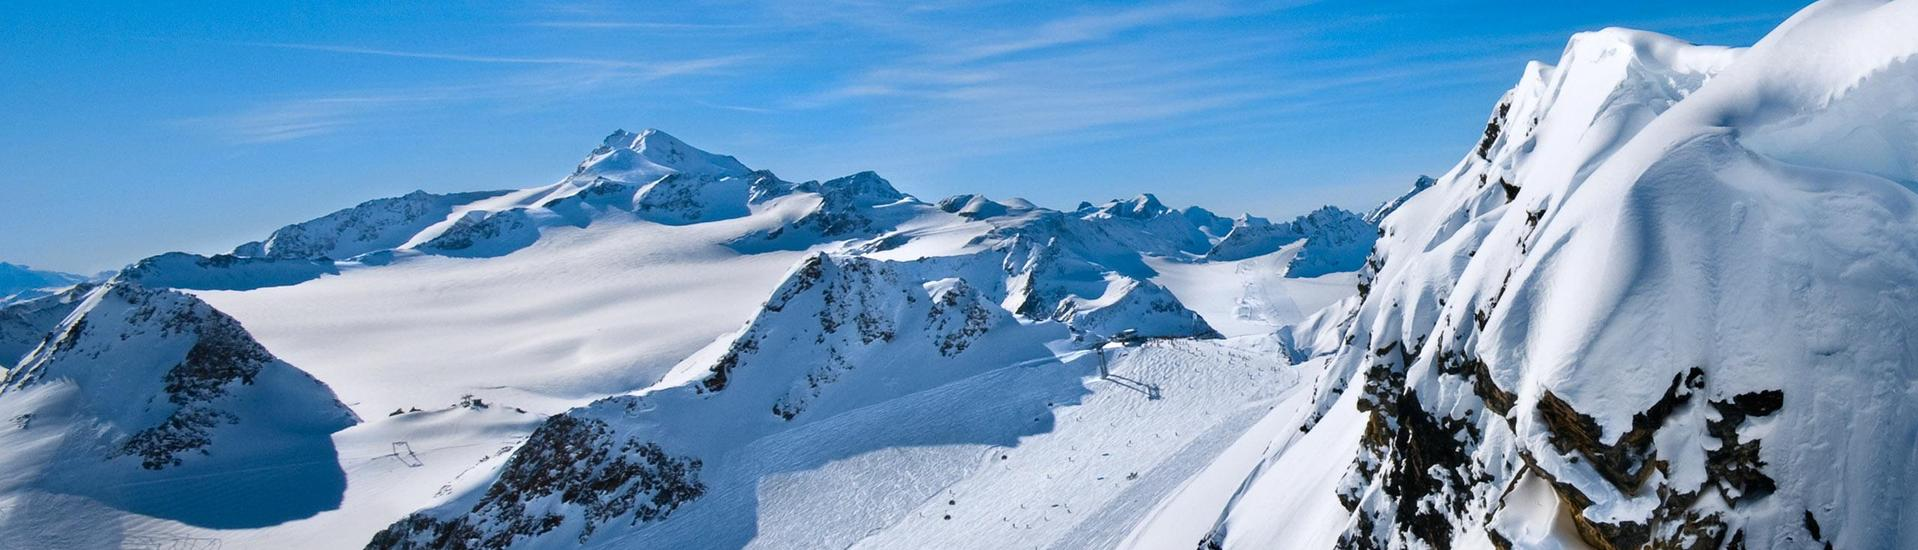 A view of a snowy mountain top in the ski resort of Klosters, where ski schools gather to start their ski lessons.